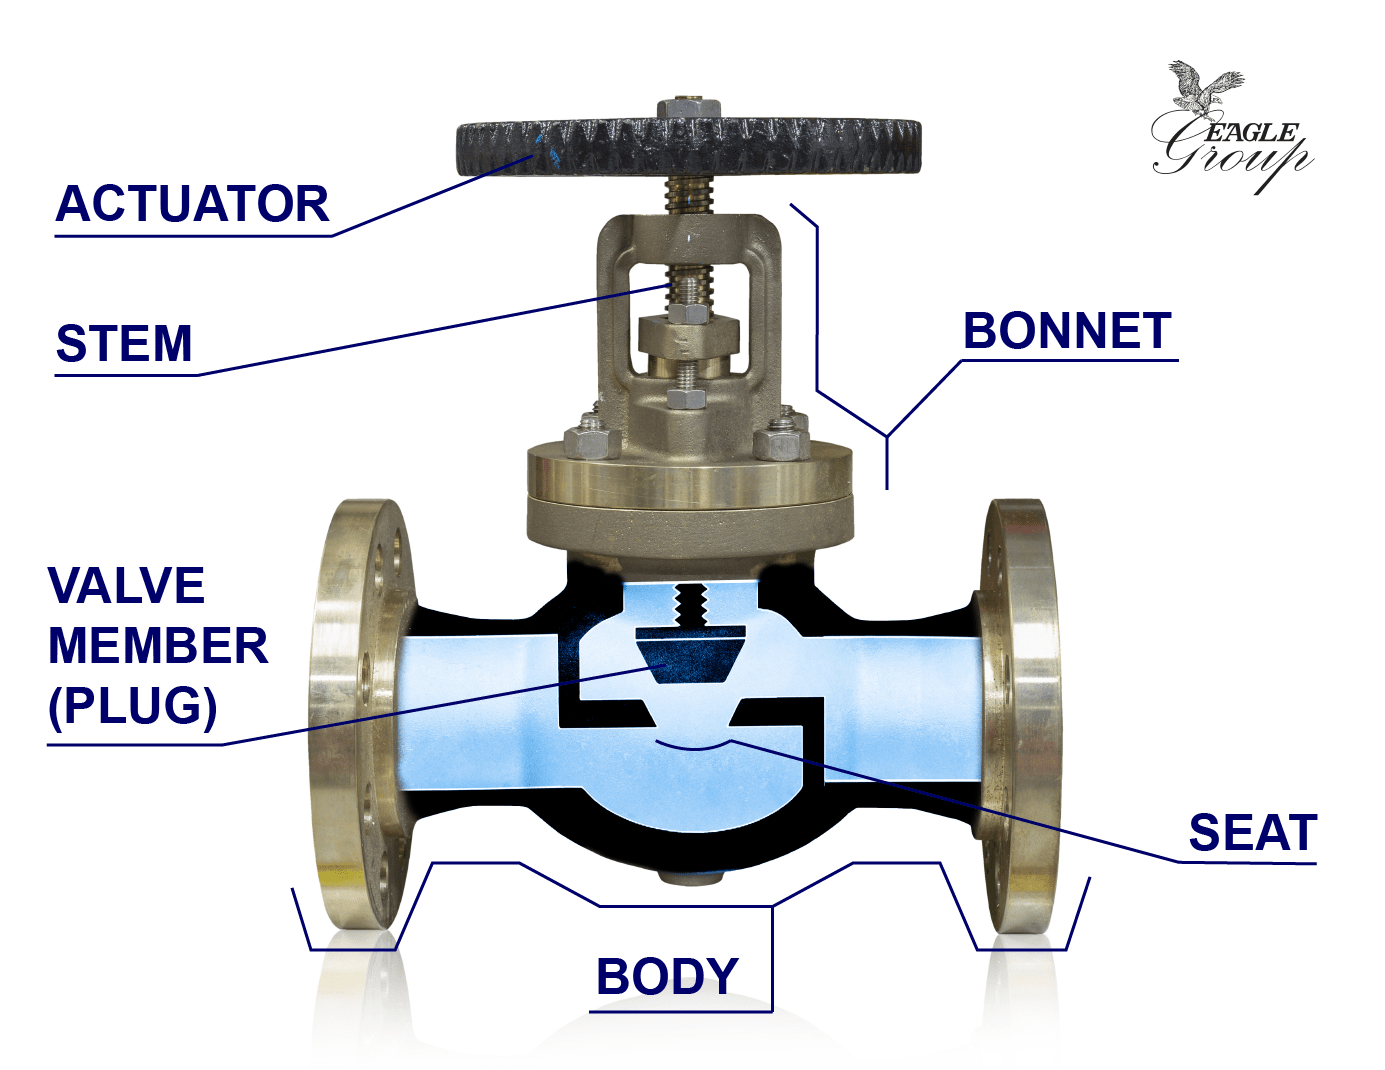 hight resolution of anatomy of industrial valves taco zone valve wiring diagram anatomy of an industrial valve globe valve